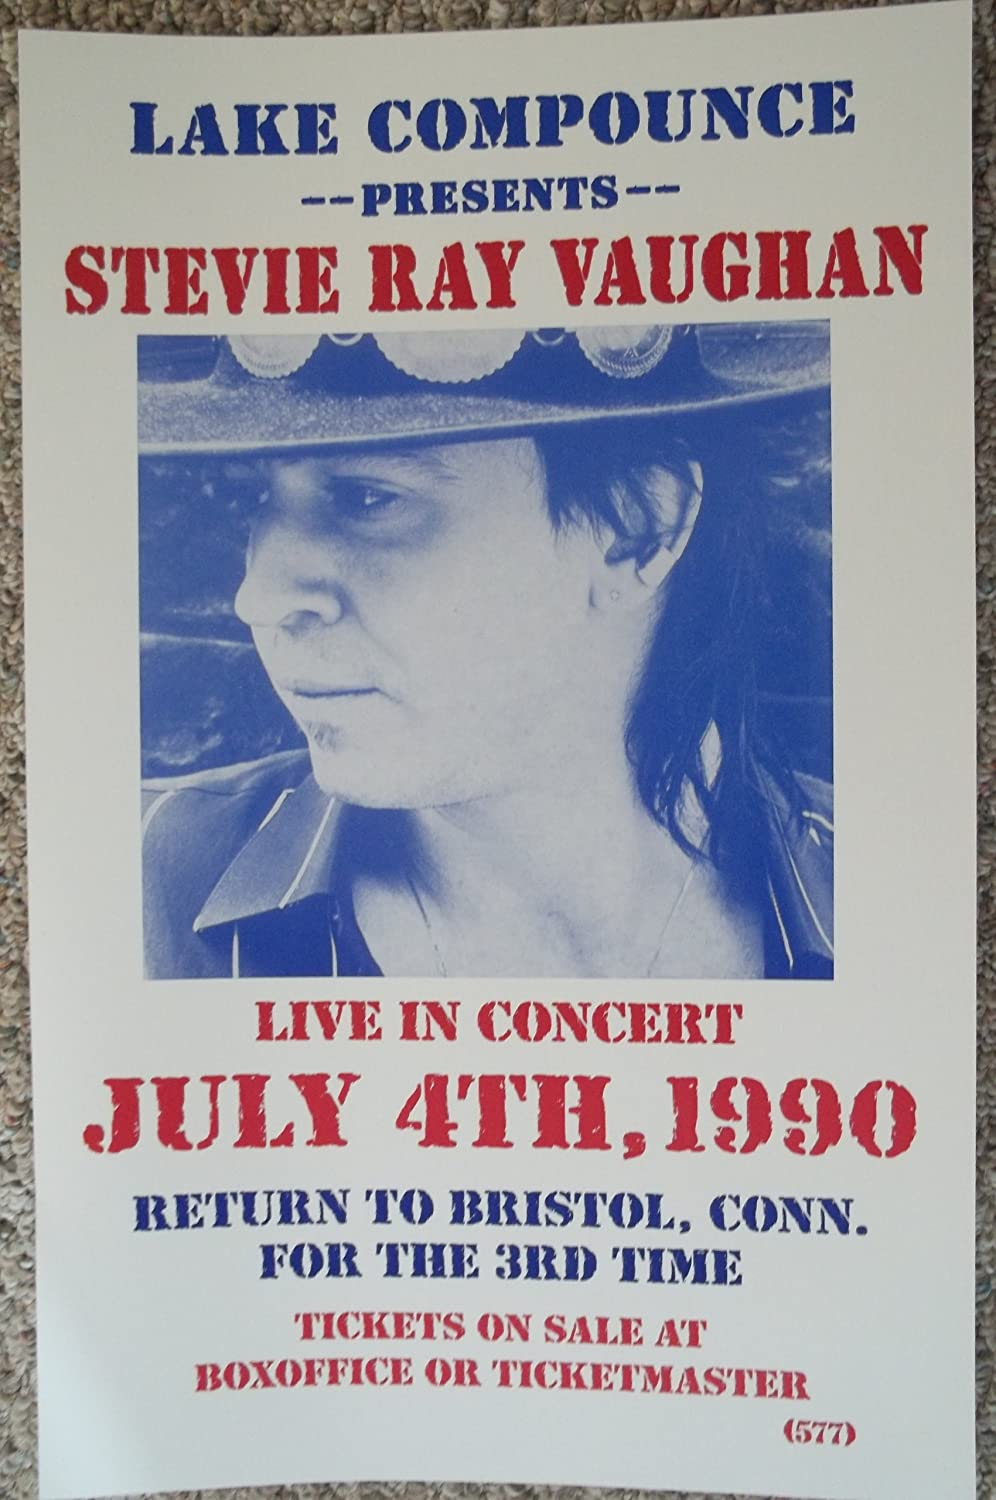 Amazon Com Stevie Ray Vaughan Live In Bristol Ct July 4th 1990 Concert Poster Prints Posters Prints